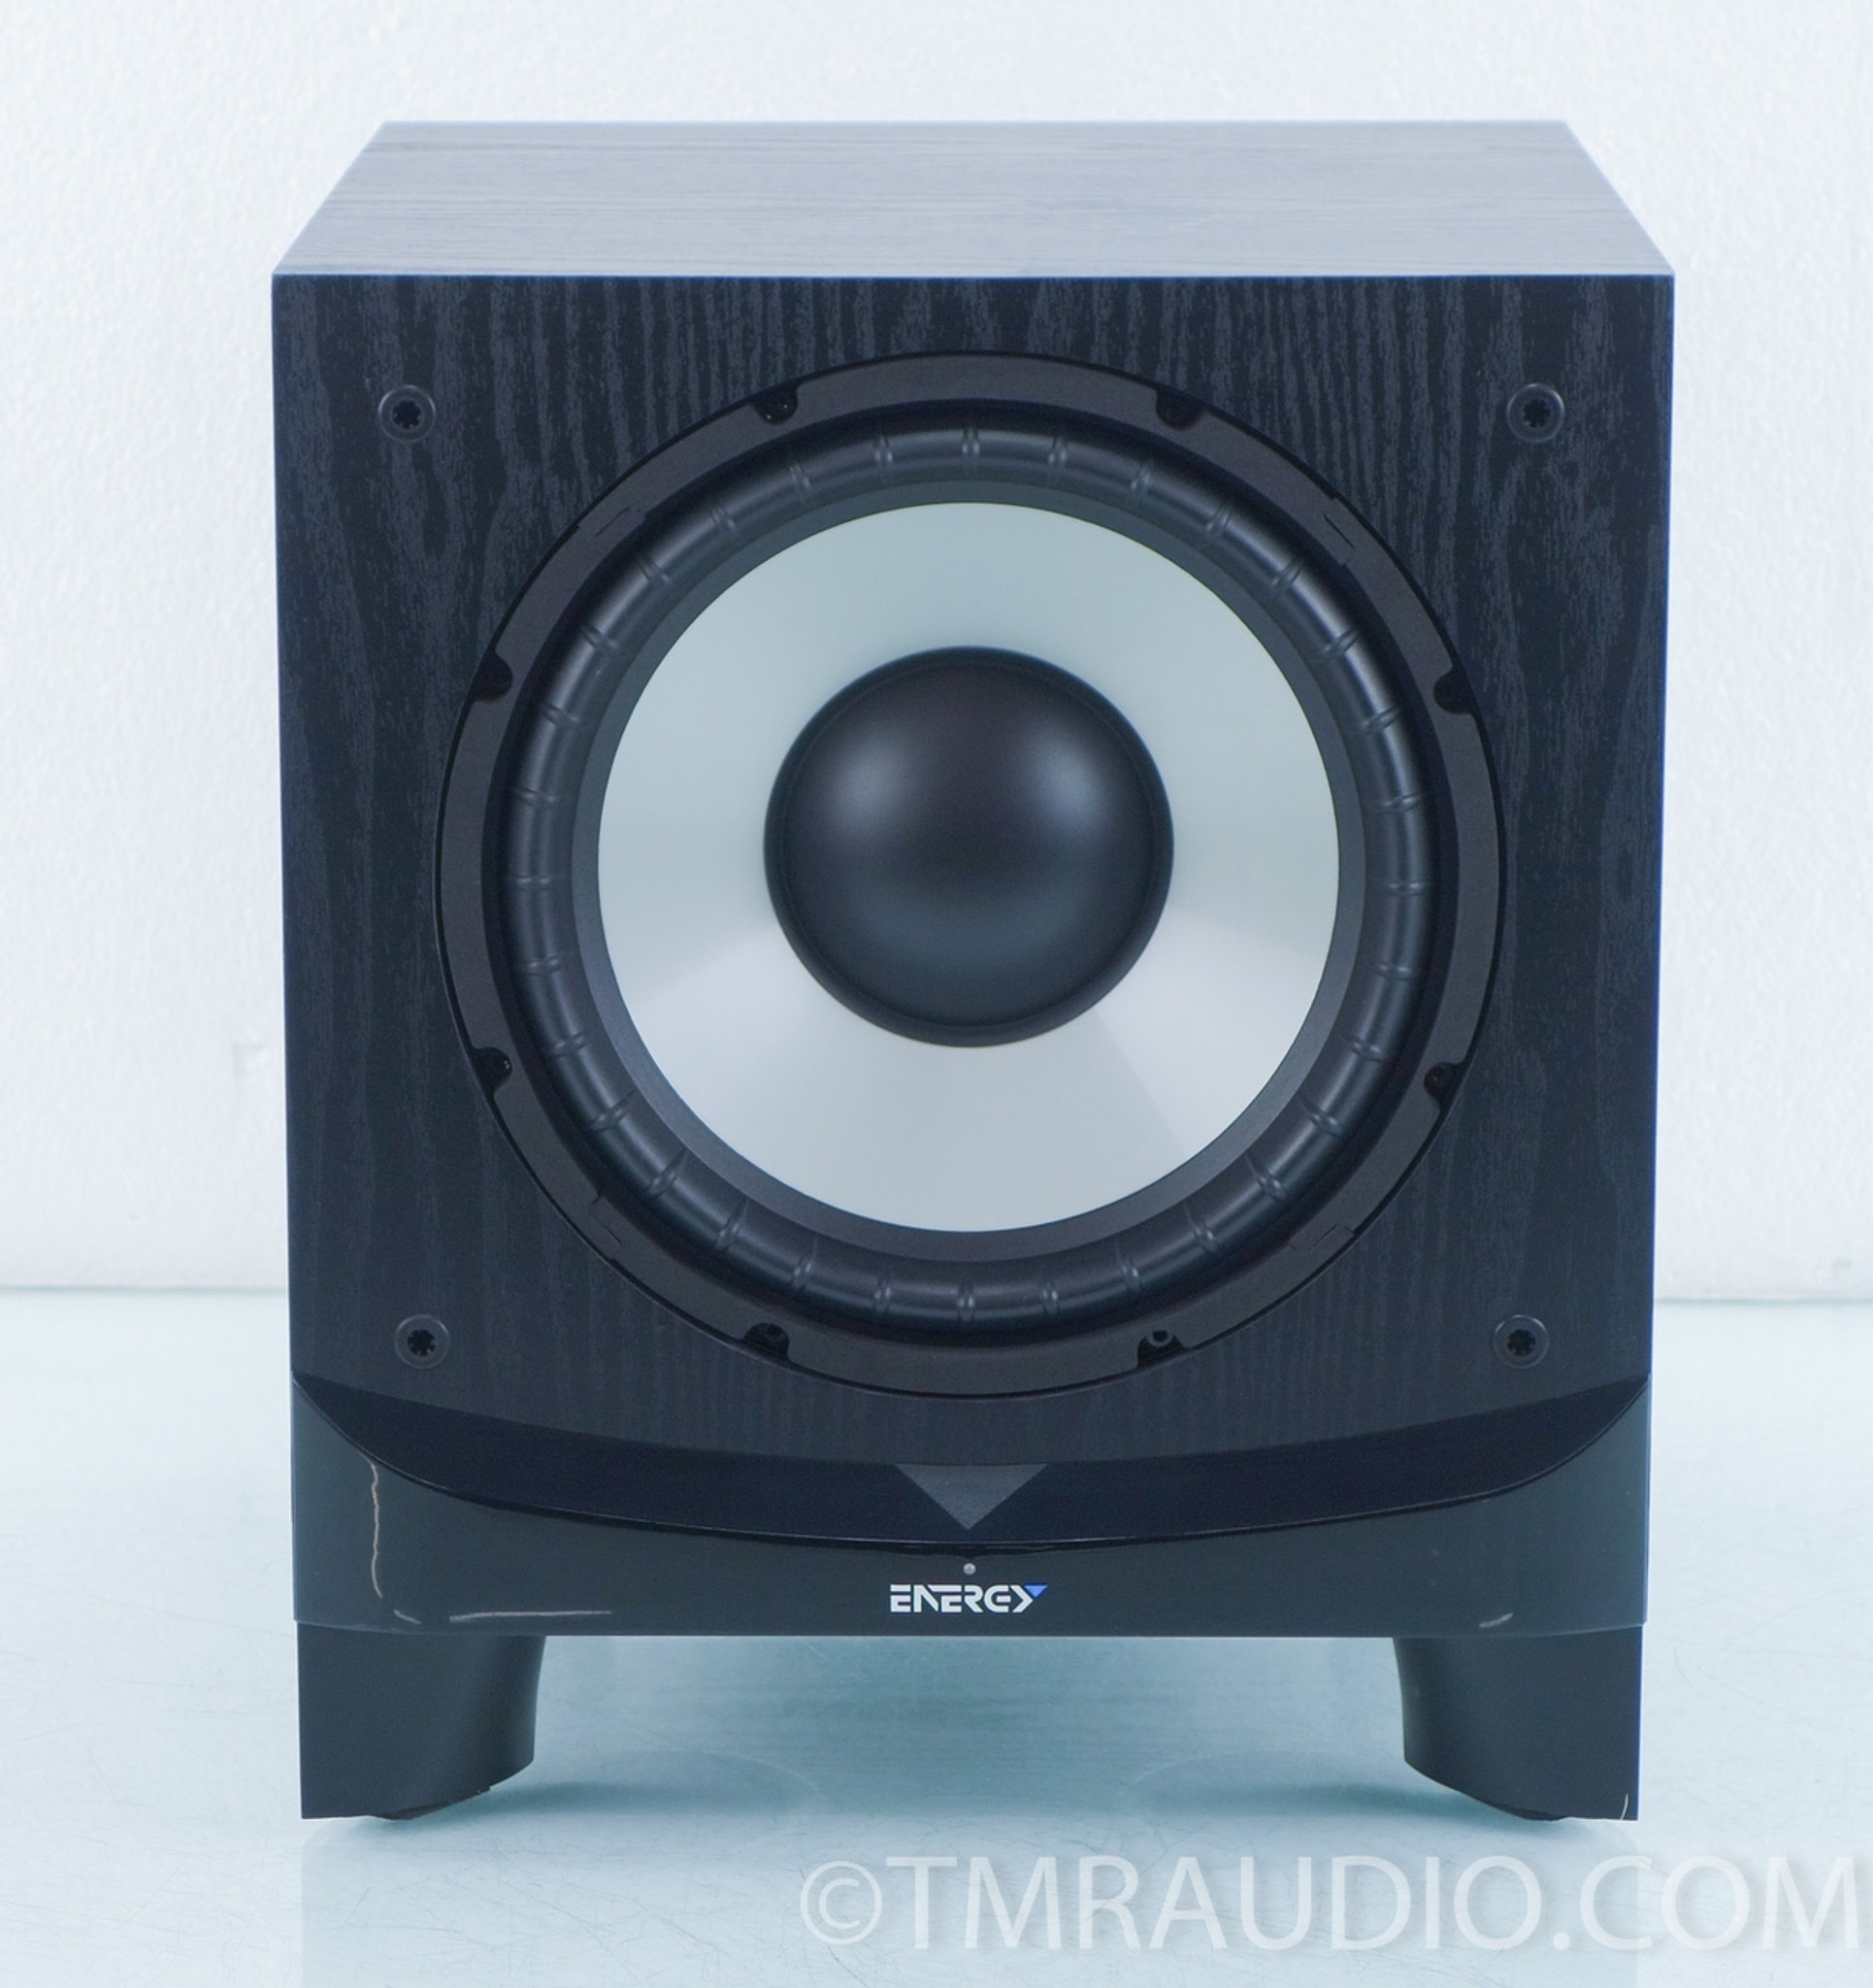 Energy Esw C10 Subwoofer The Music Room